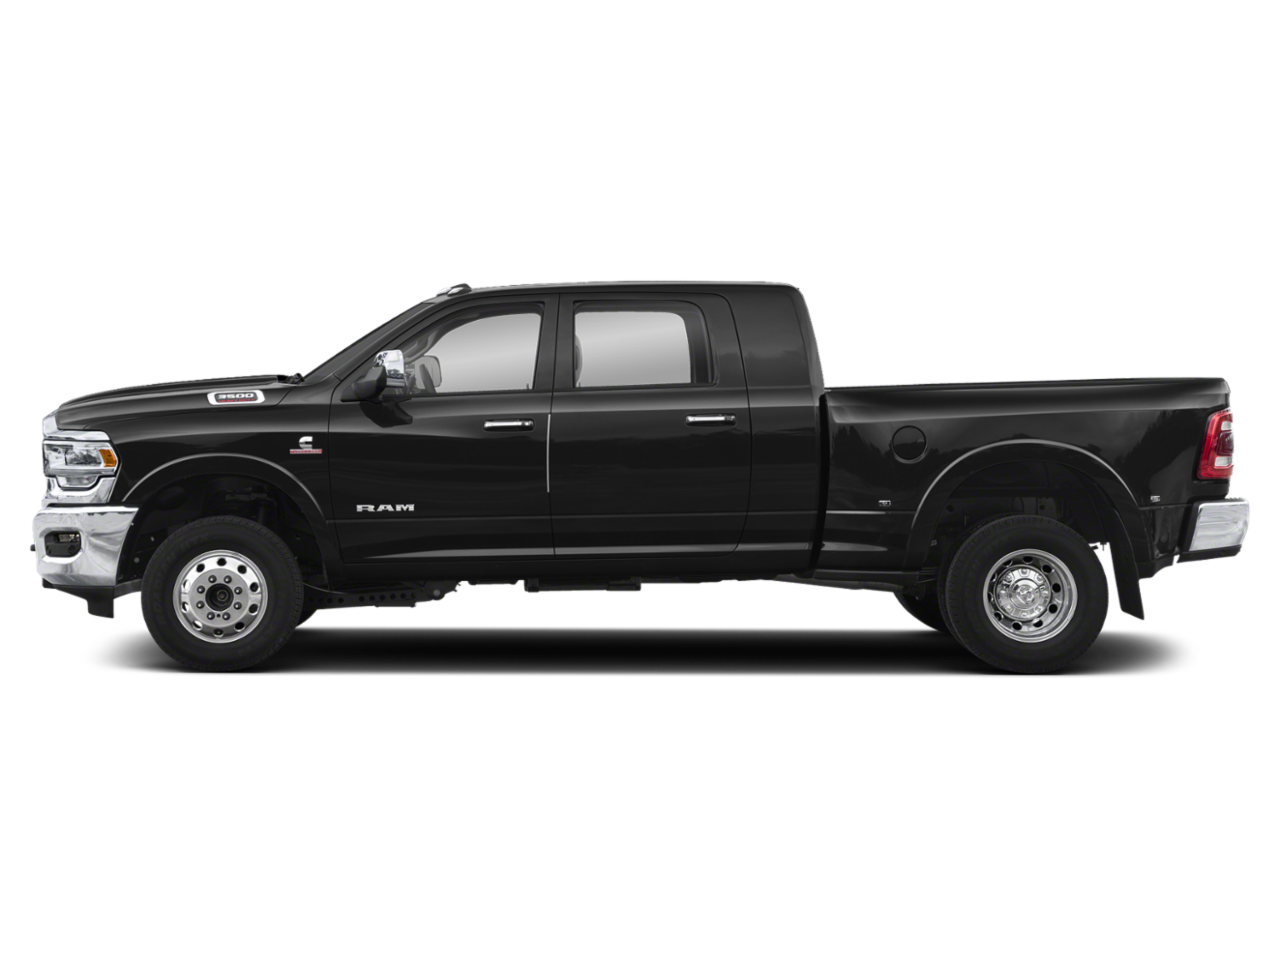 New 2019 Ram 3500 SRW Limited